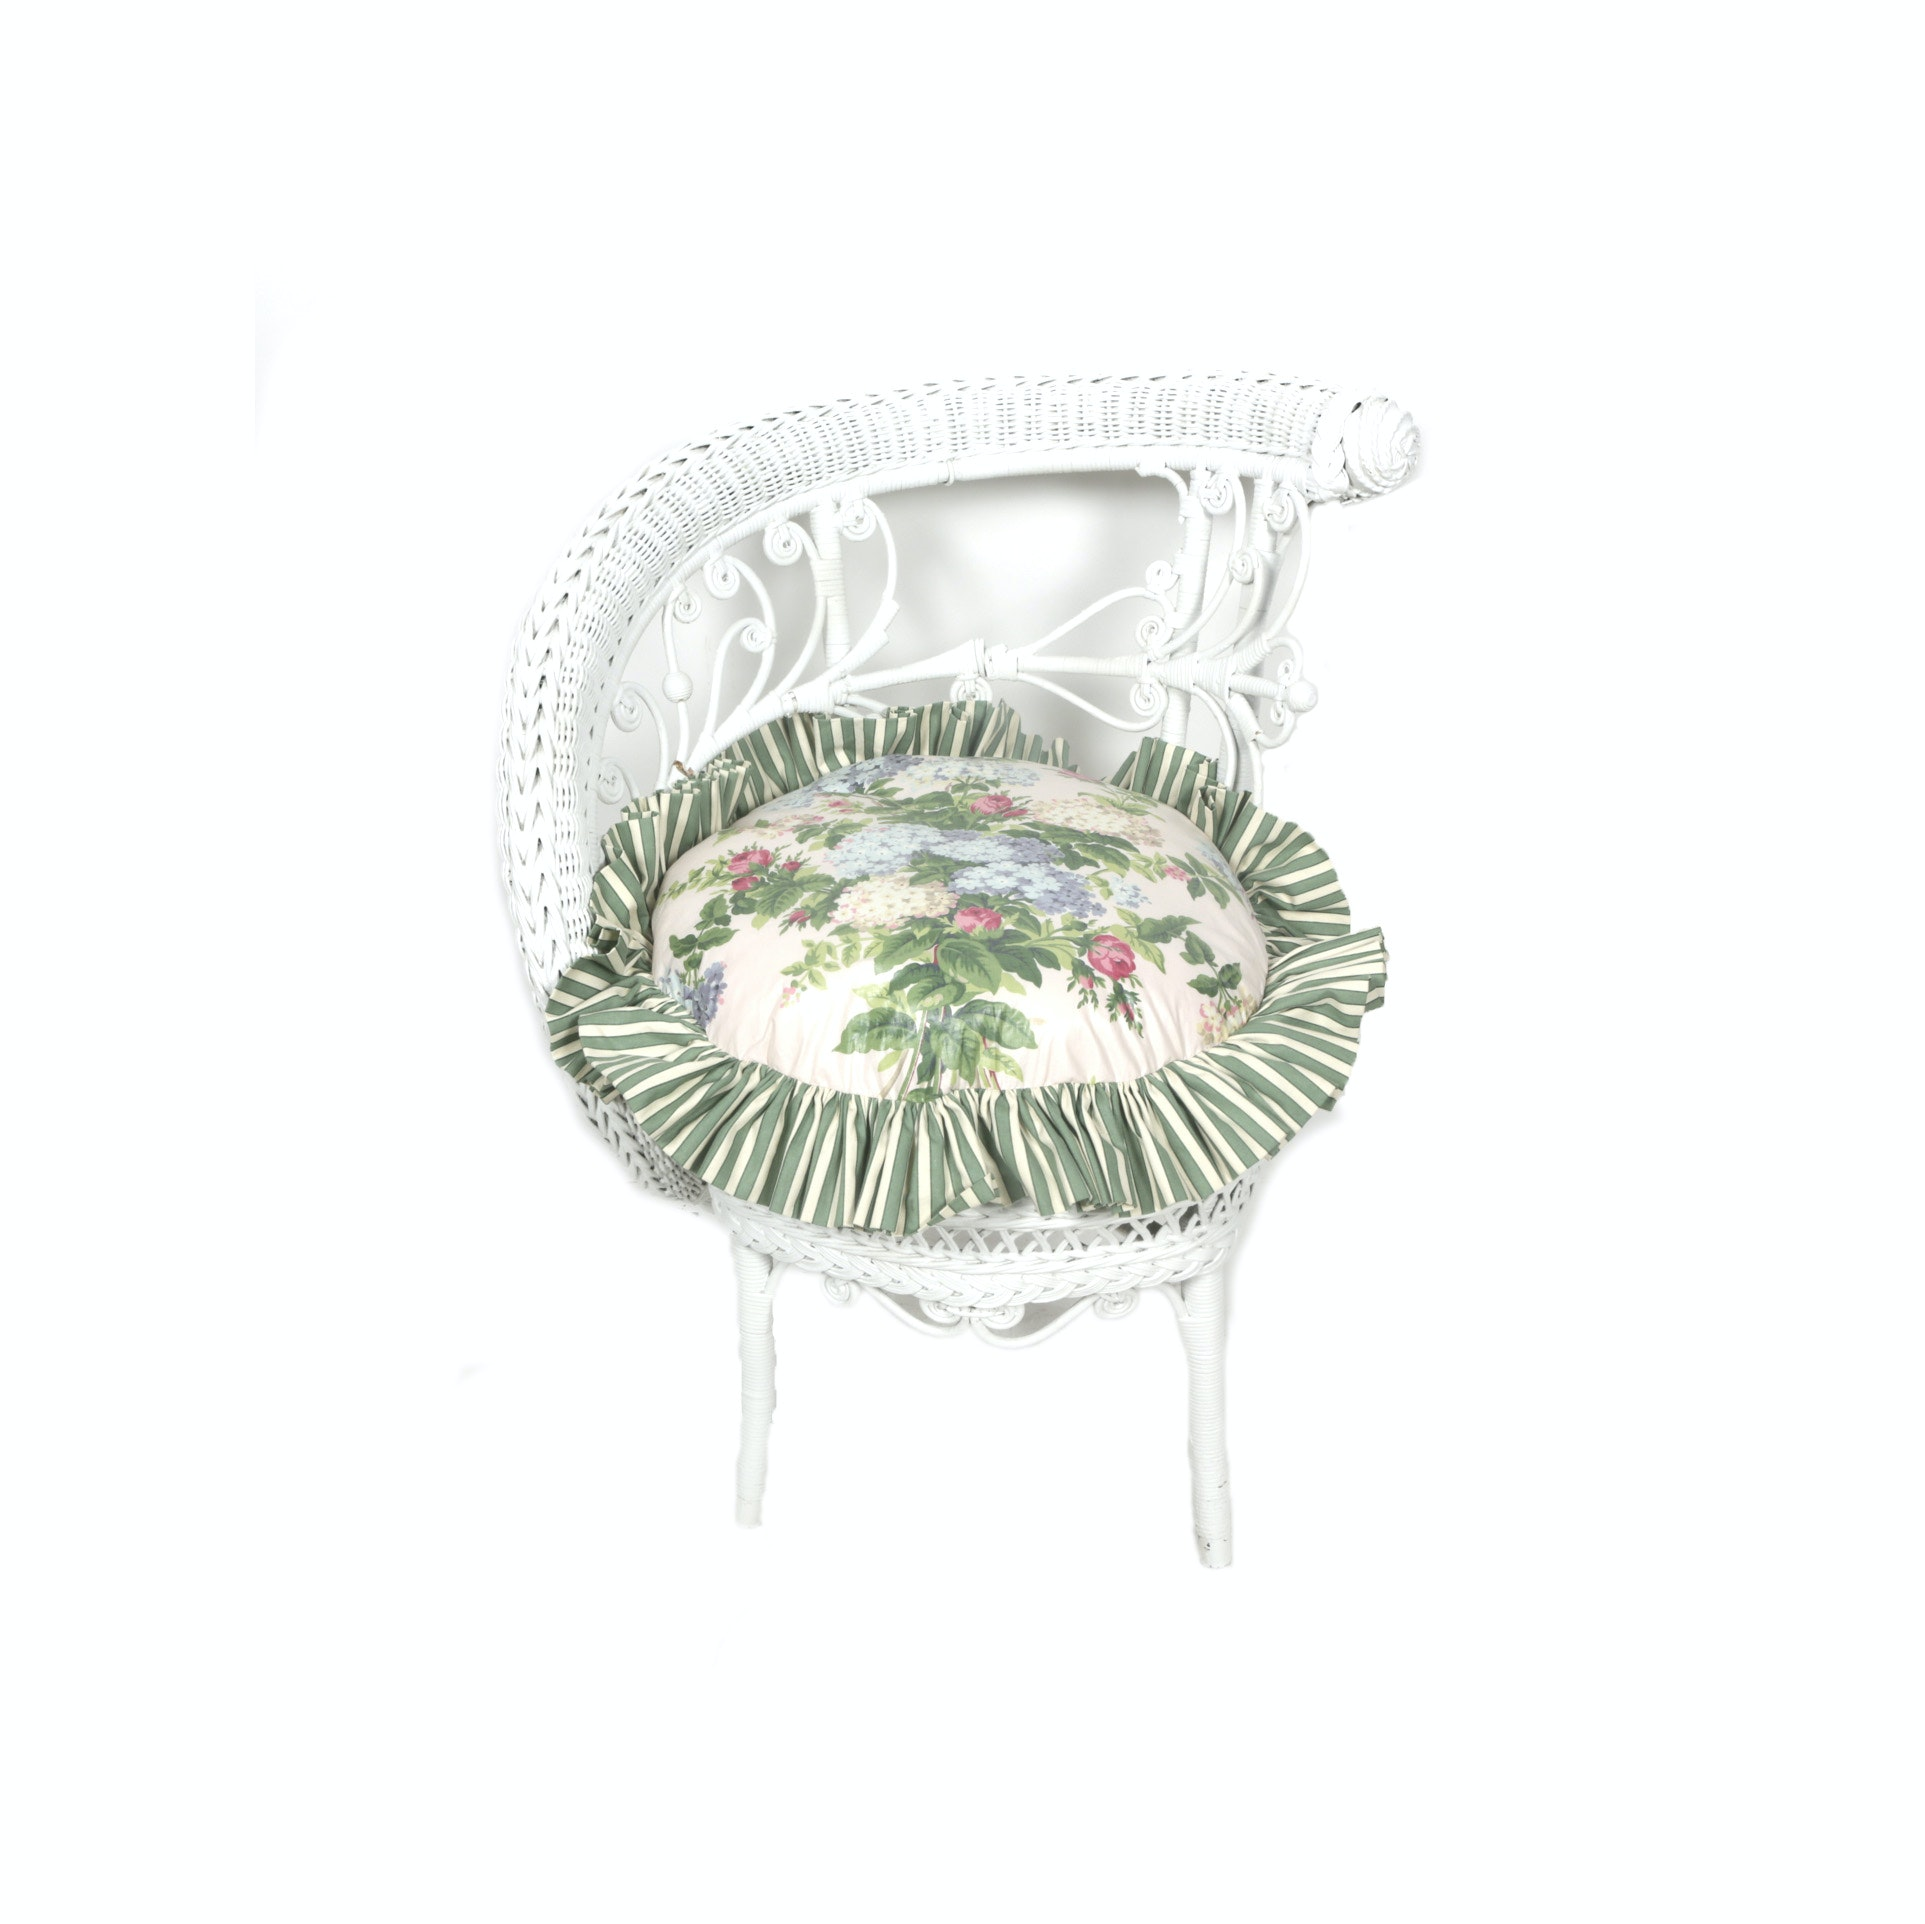 Vintage White Painted Wicker Chair with Cushion